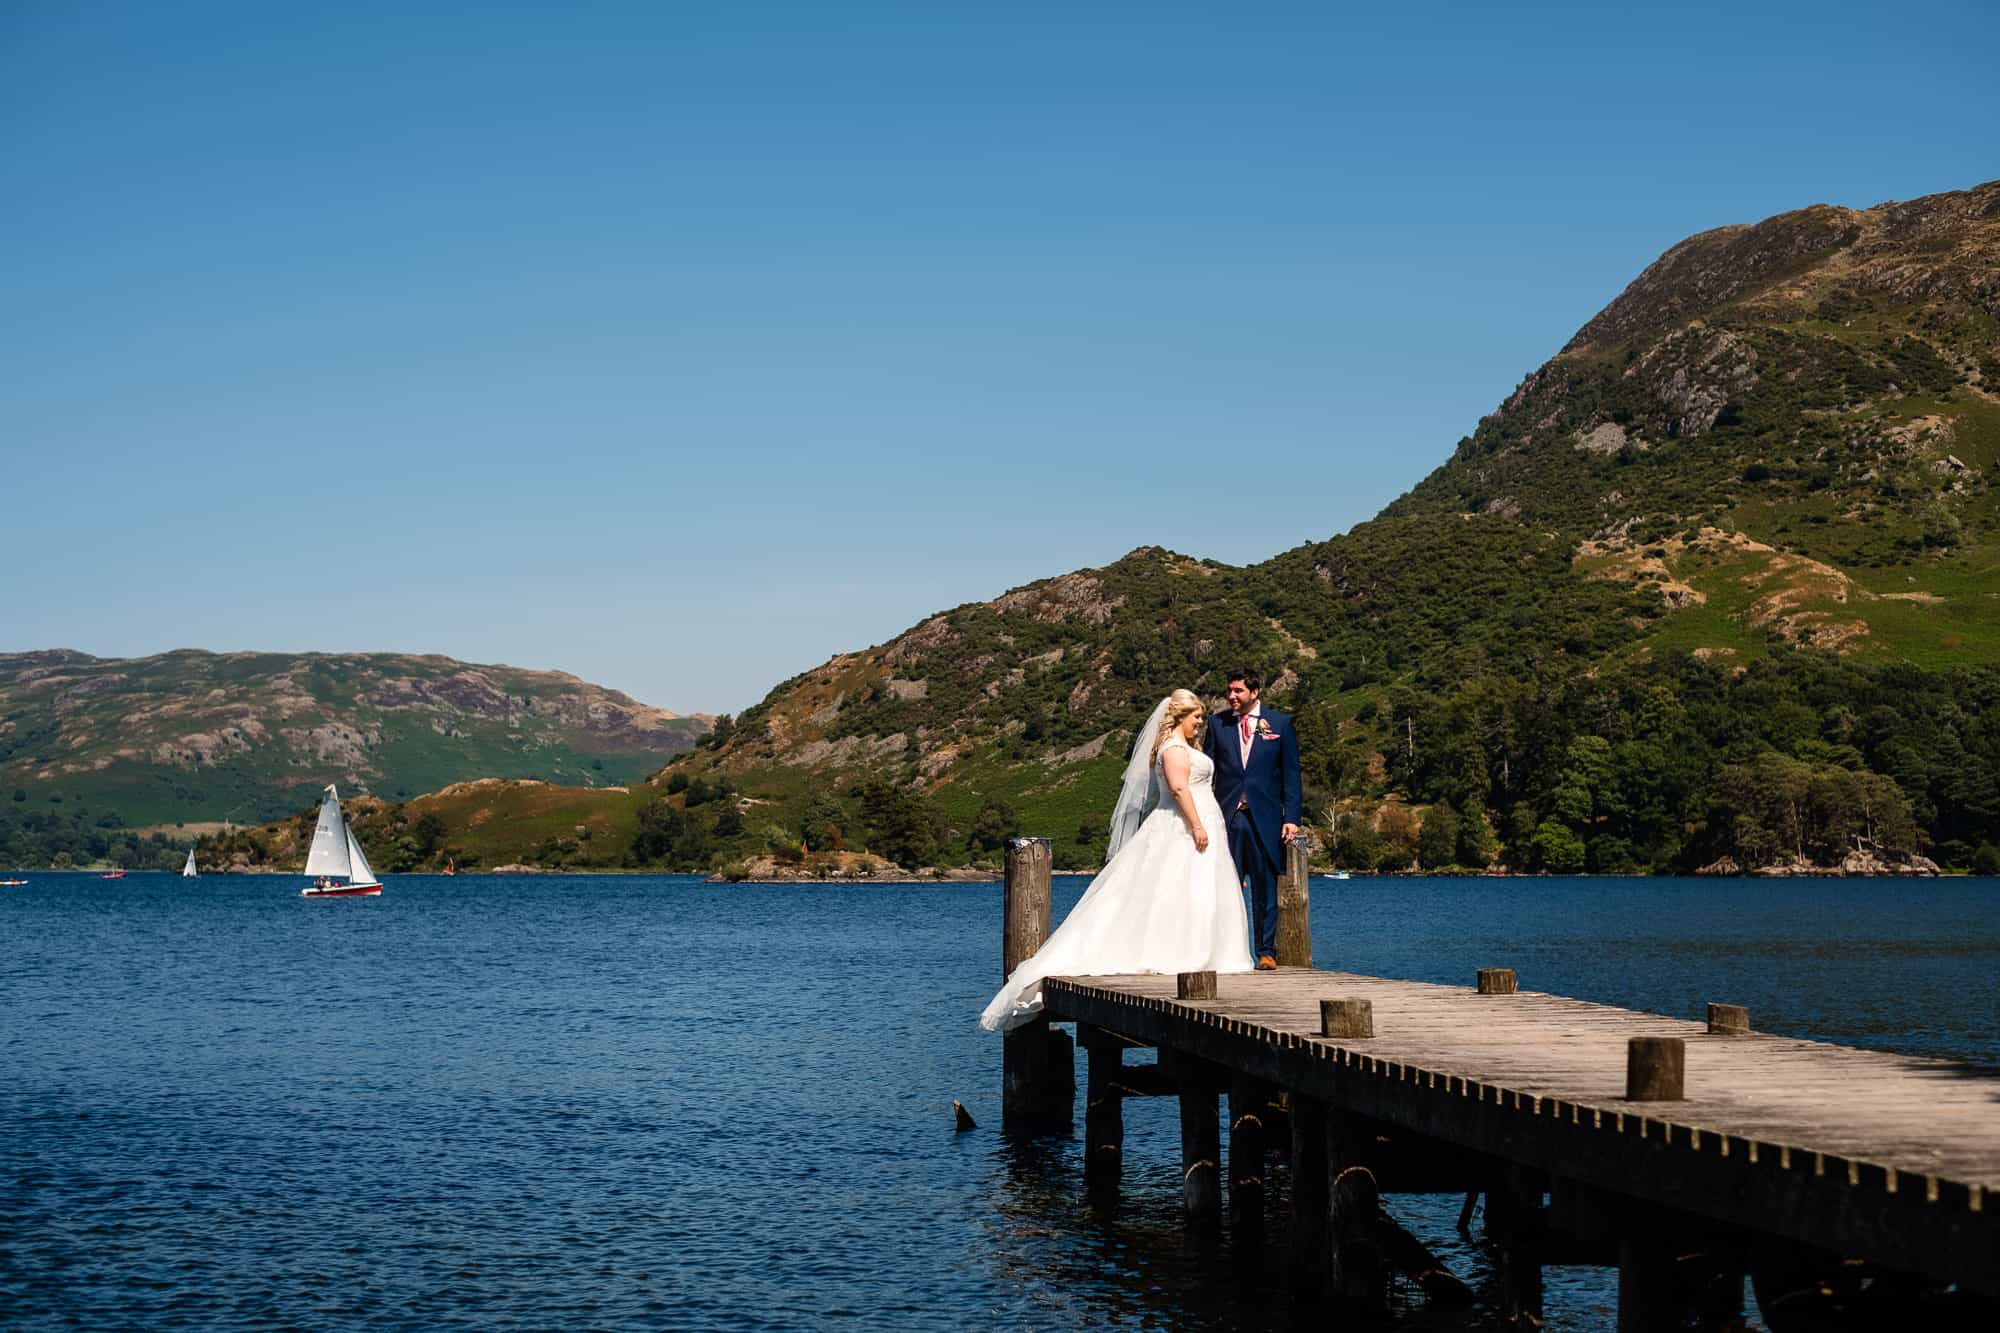 inn on the lake wedding photography